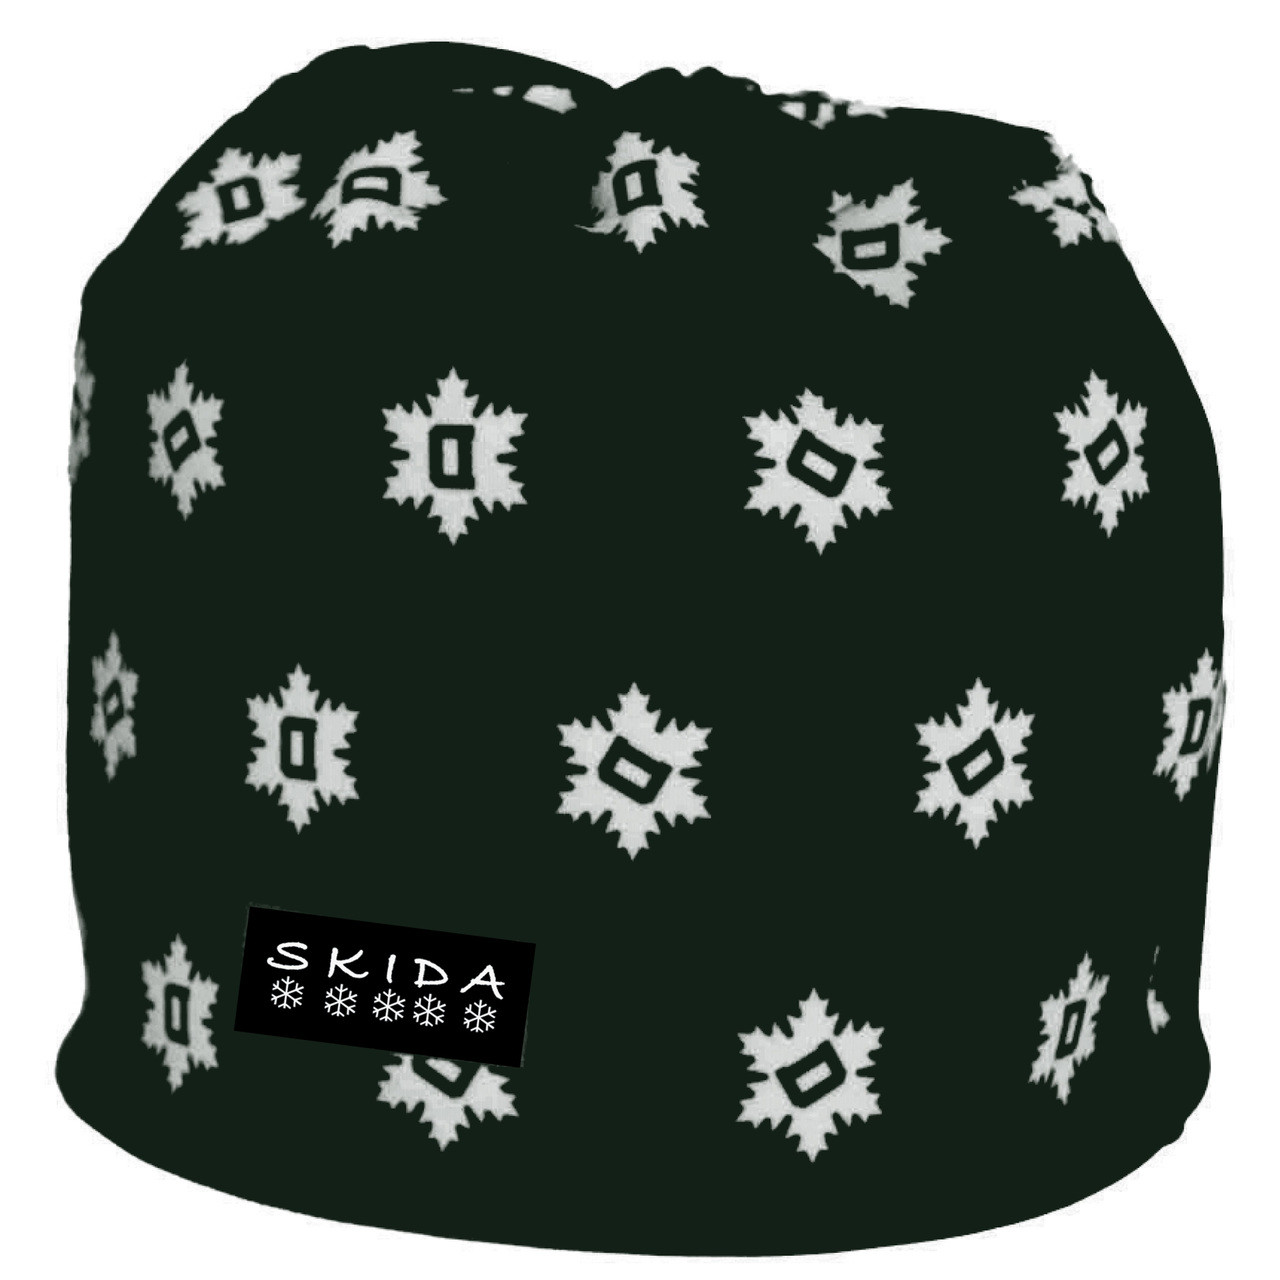 7a3f5467f42 Green winter hat with white  D  snowflakes